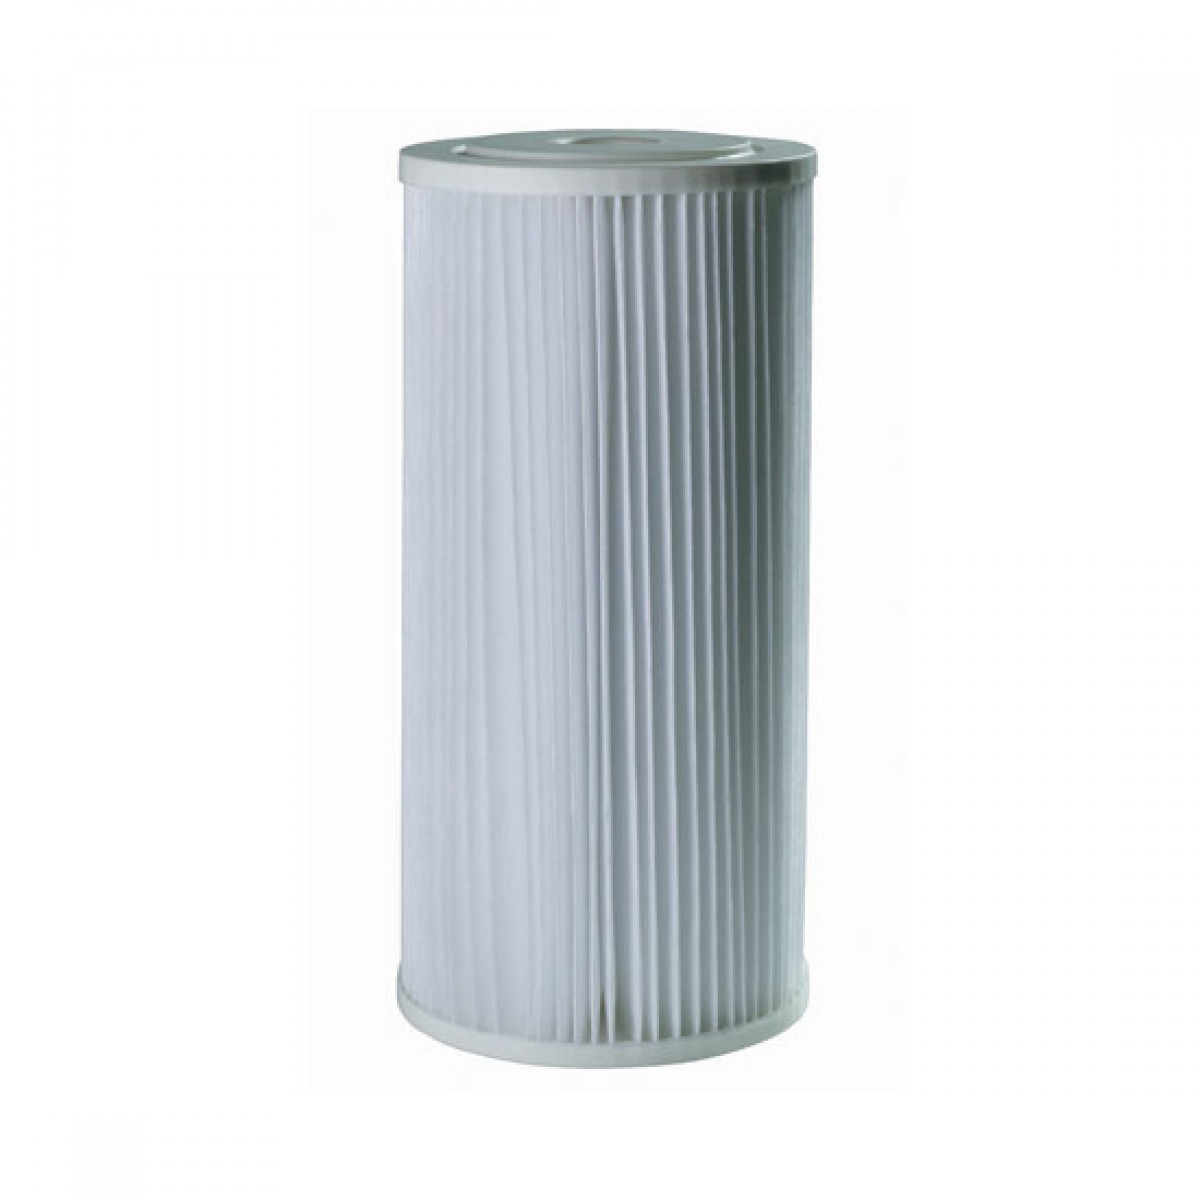 whole house water filter cartridge. OmniFilter RS6 Whole House Water Filter Replacement Cartridge M